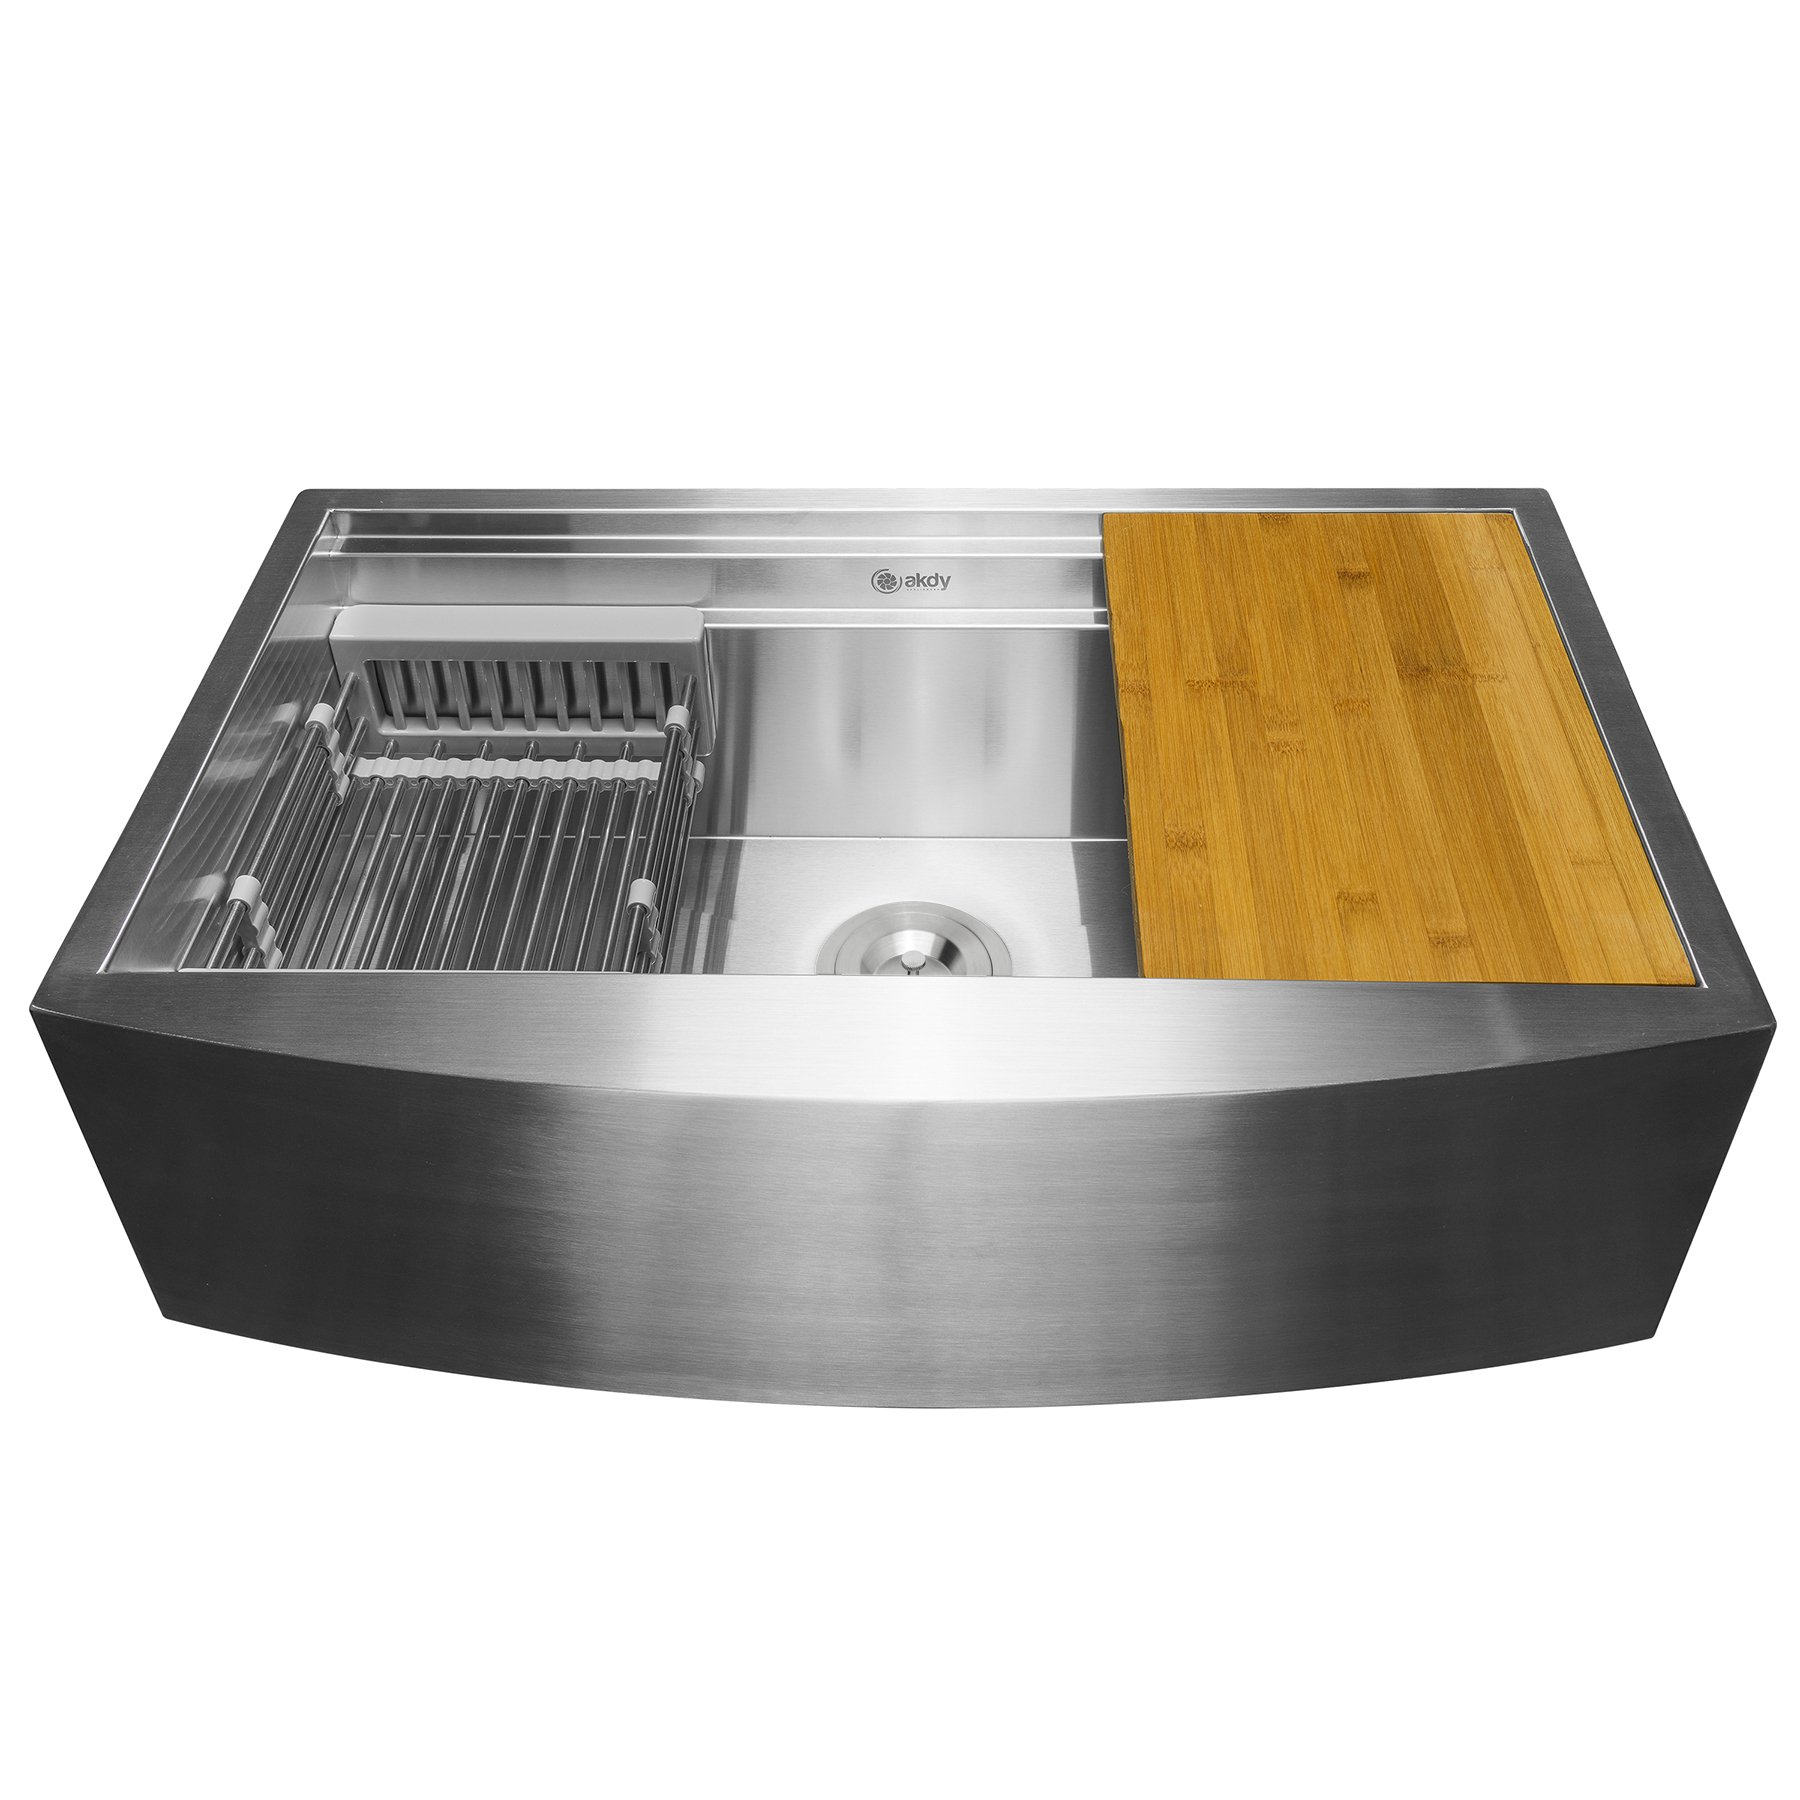 AKDY Apron Farmhouse Handmade Stainless Steel Kitchen Sink - 30'' x 20'' x 9'' Single Bowl Space Saving Kitchen Sink - Kitchen Sink with Drain Strainer Kit Adjustable Tray and Cutting Board